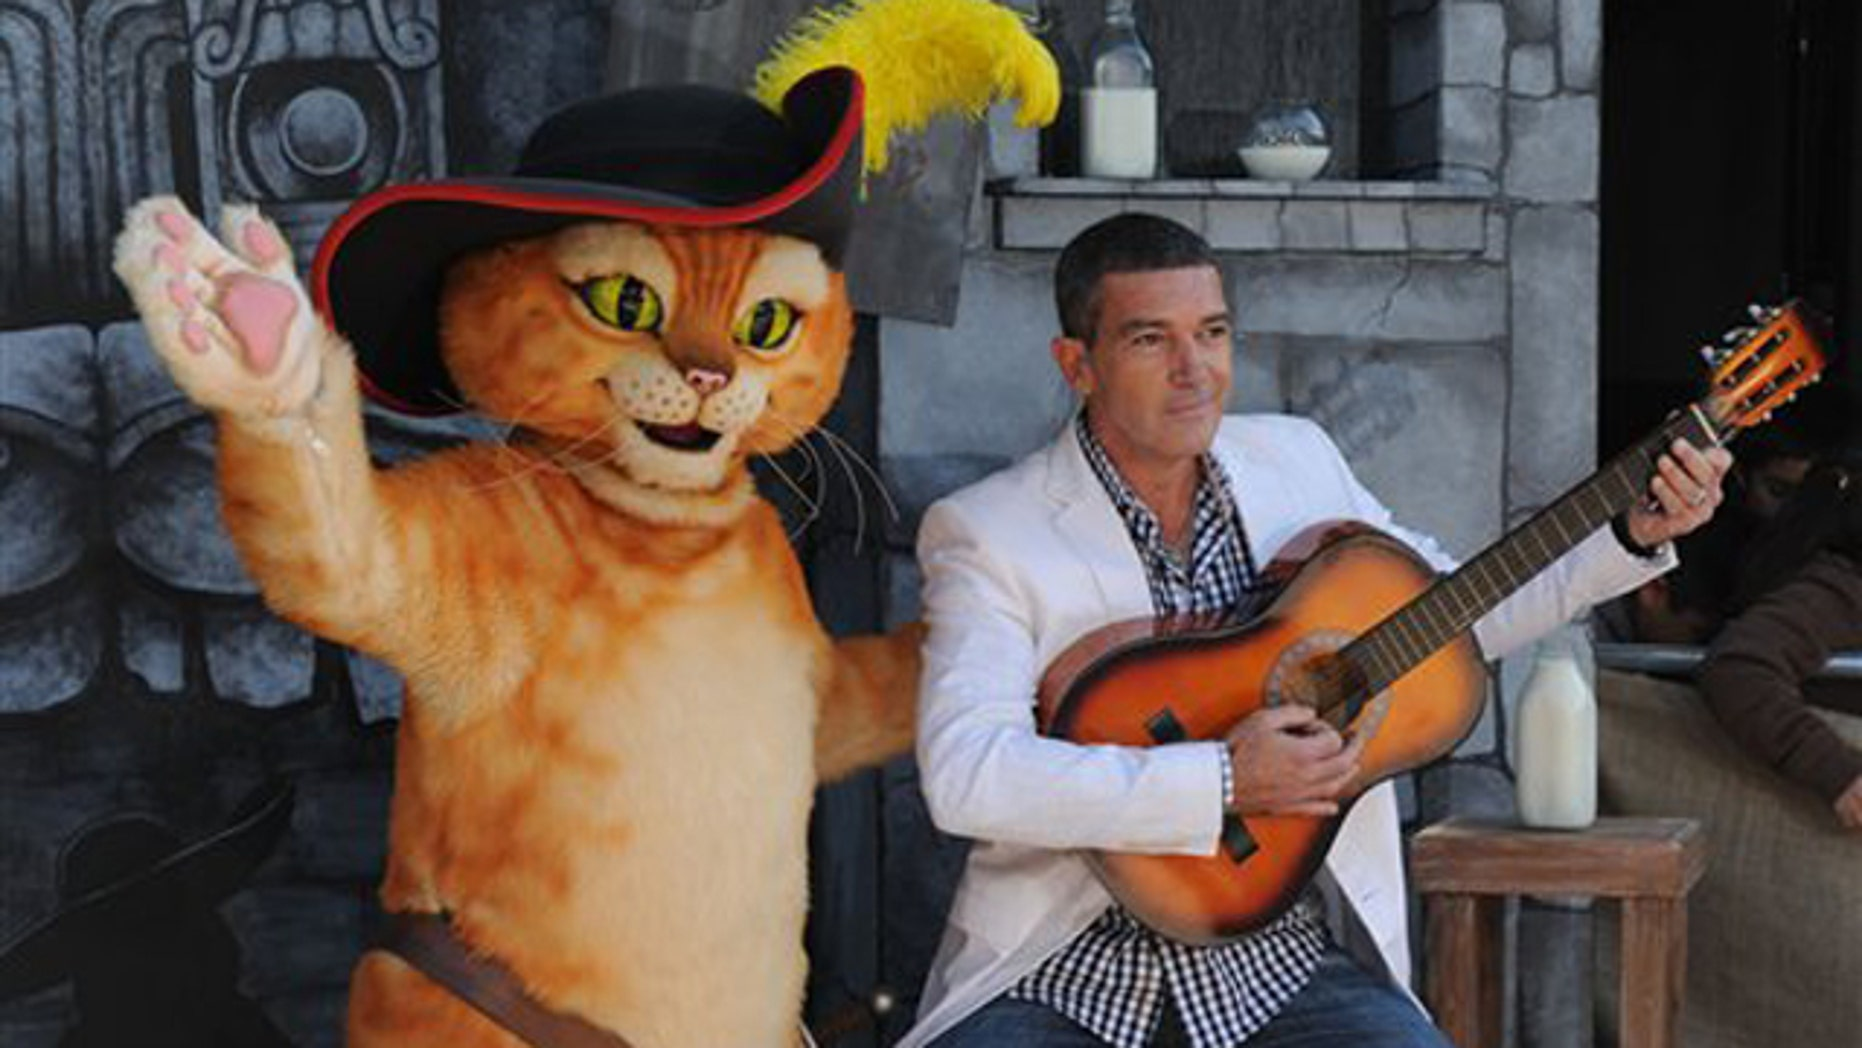 """Oct. 22, 2011: Antonio Banderas arrives at the premiere of """"Puss In Boots"""" Sunday, Oct. 22, 2011, at The Regency Village Theater in Los Angeles. """"Puss In Boots"""" opens in theaters on Oct. 28, 2011."""